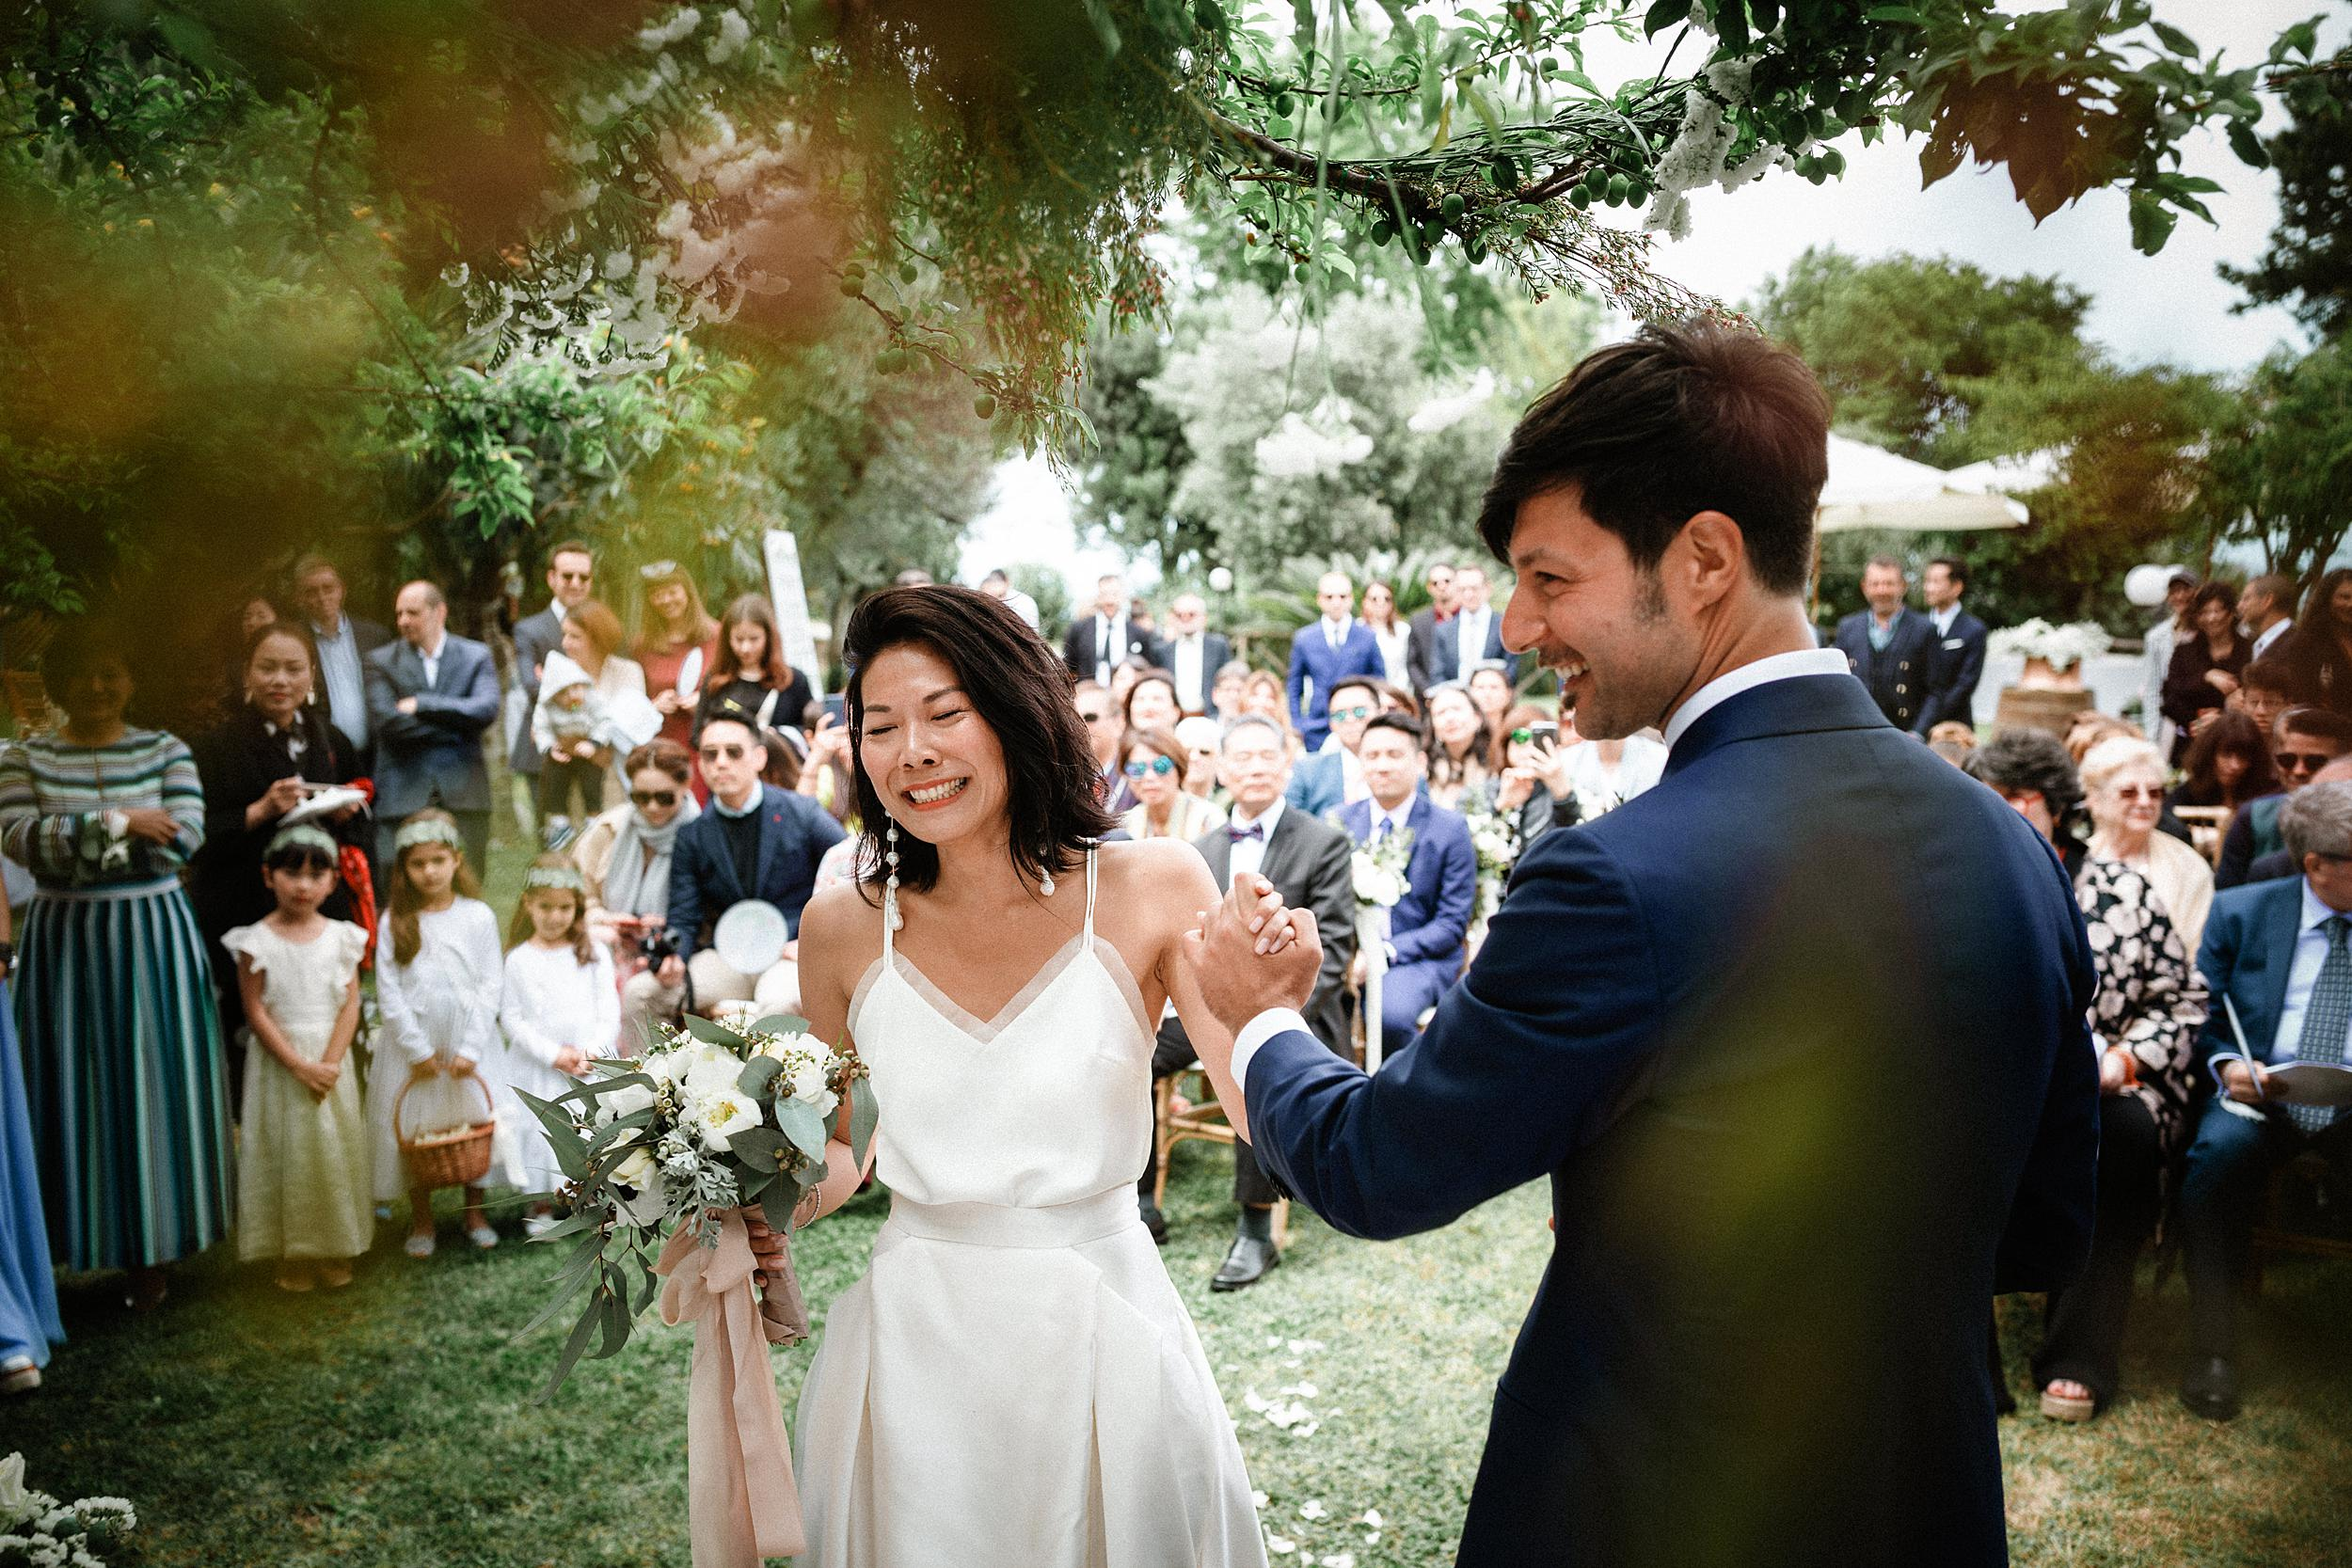 Beautiful bride Cindy wore a wedding dress by Halfpenny London